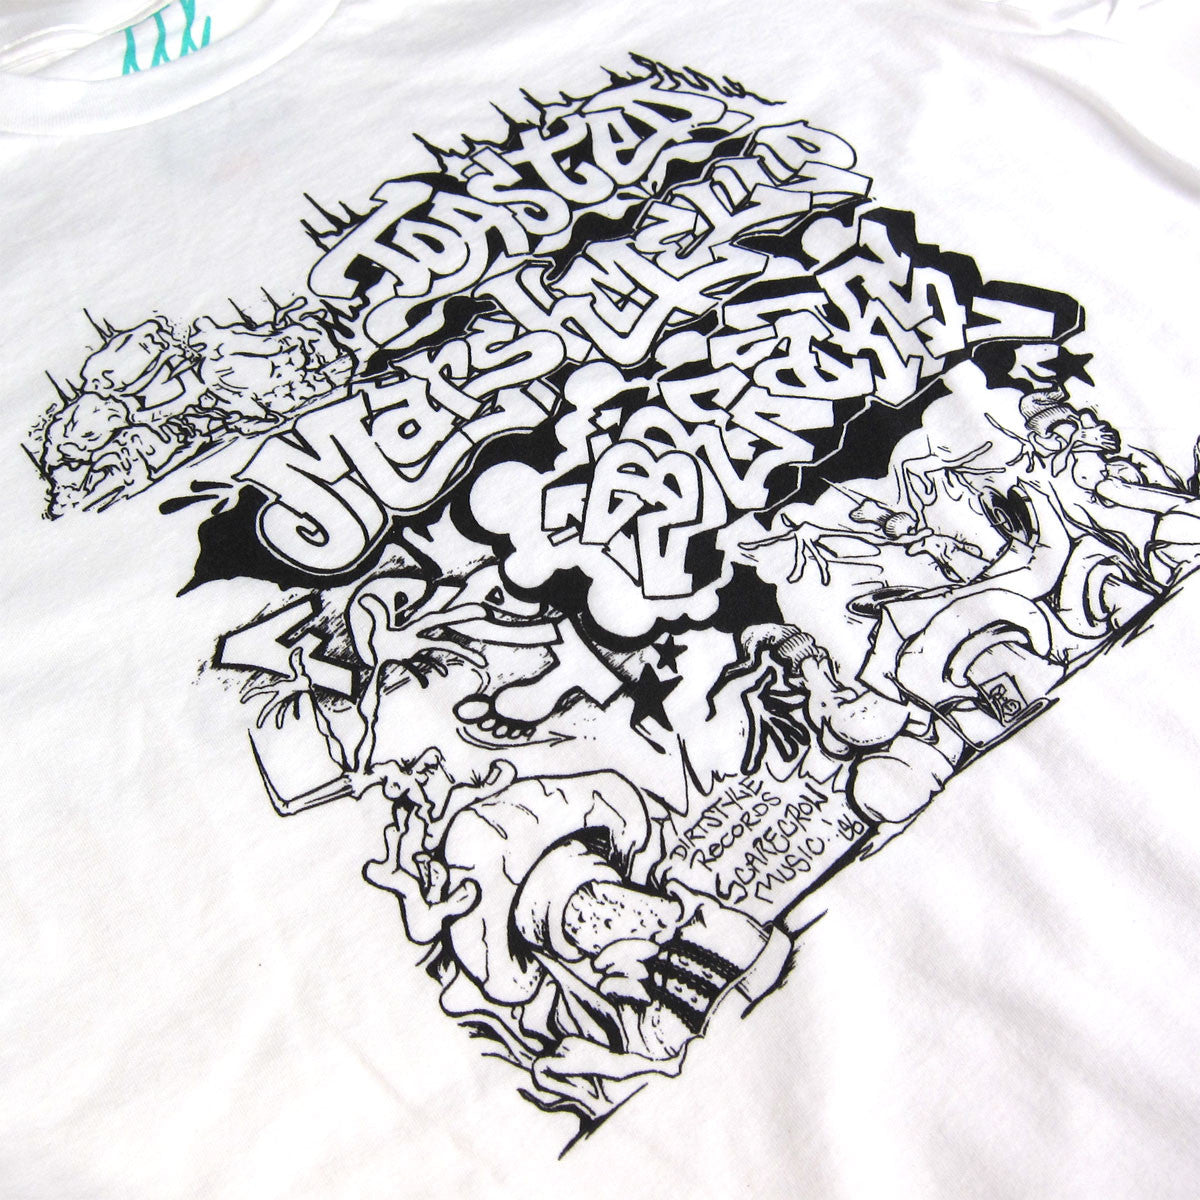 Turntable Lab: Toasted Marshmallow Feet Braxe Shirt (TTL x Thud Rumble) detail